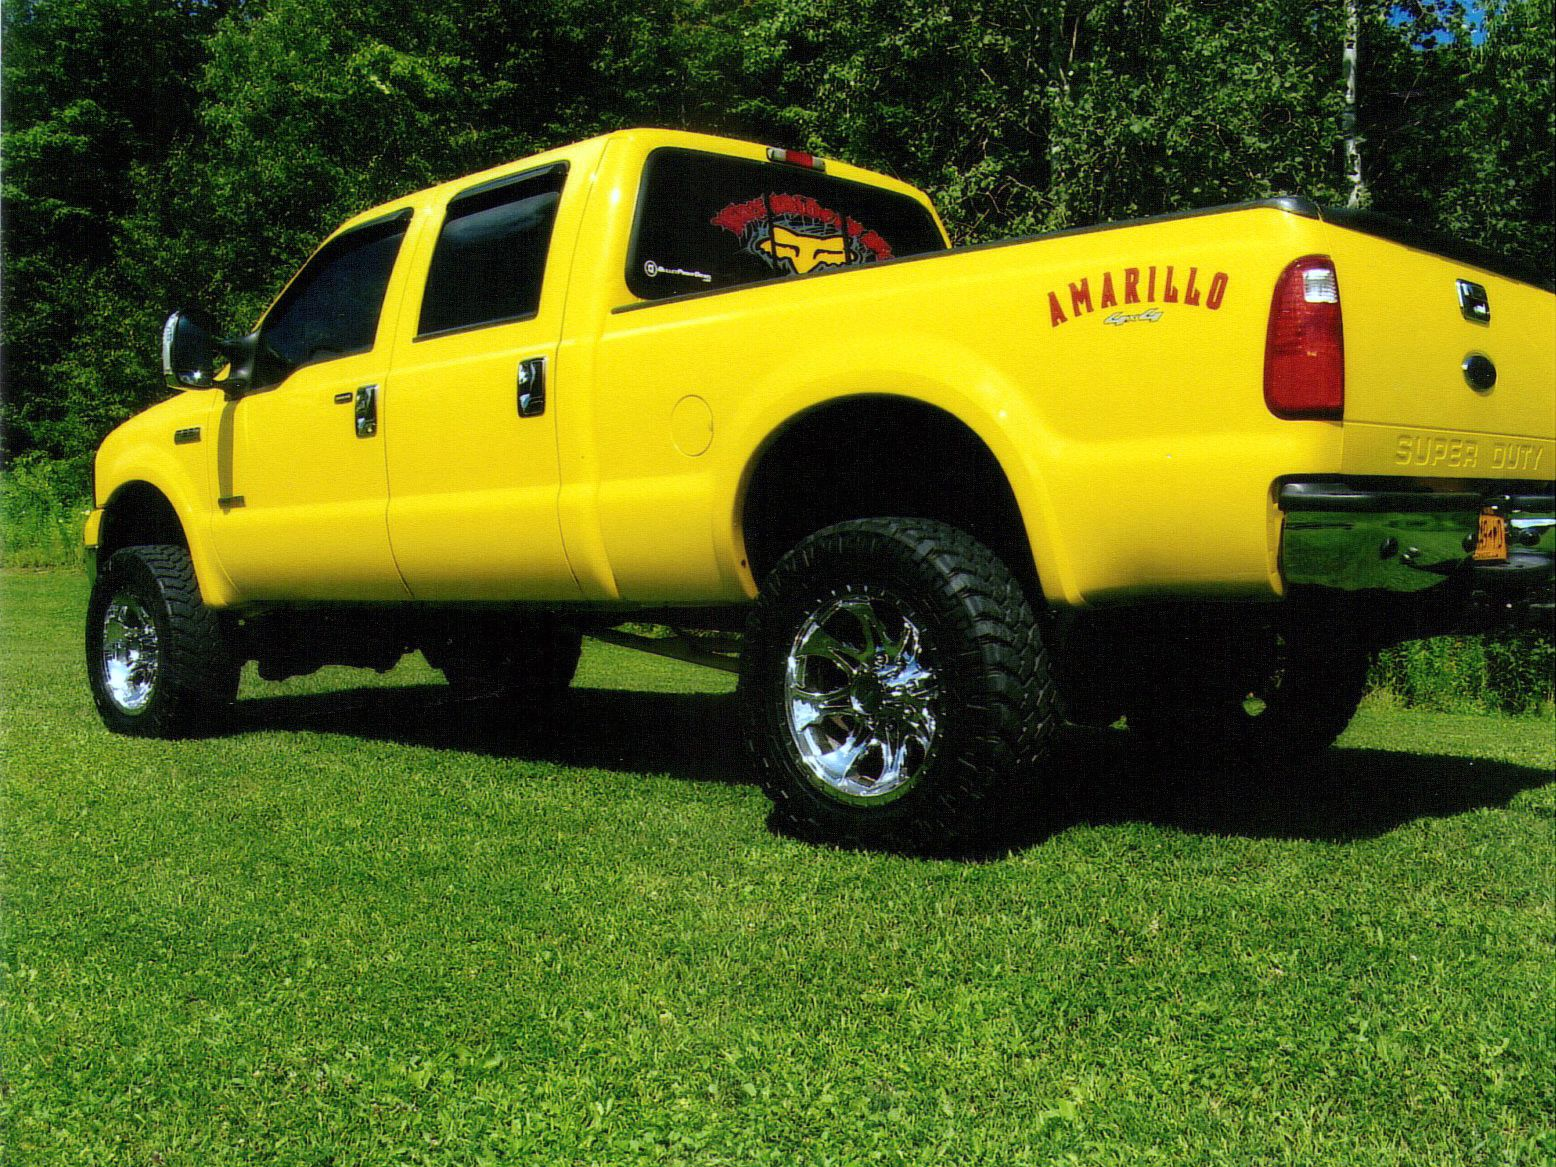 Amarillo SuperDuty Ford Bullet Naccarato Proof Diesel